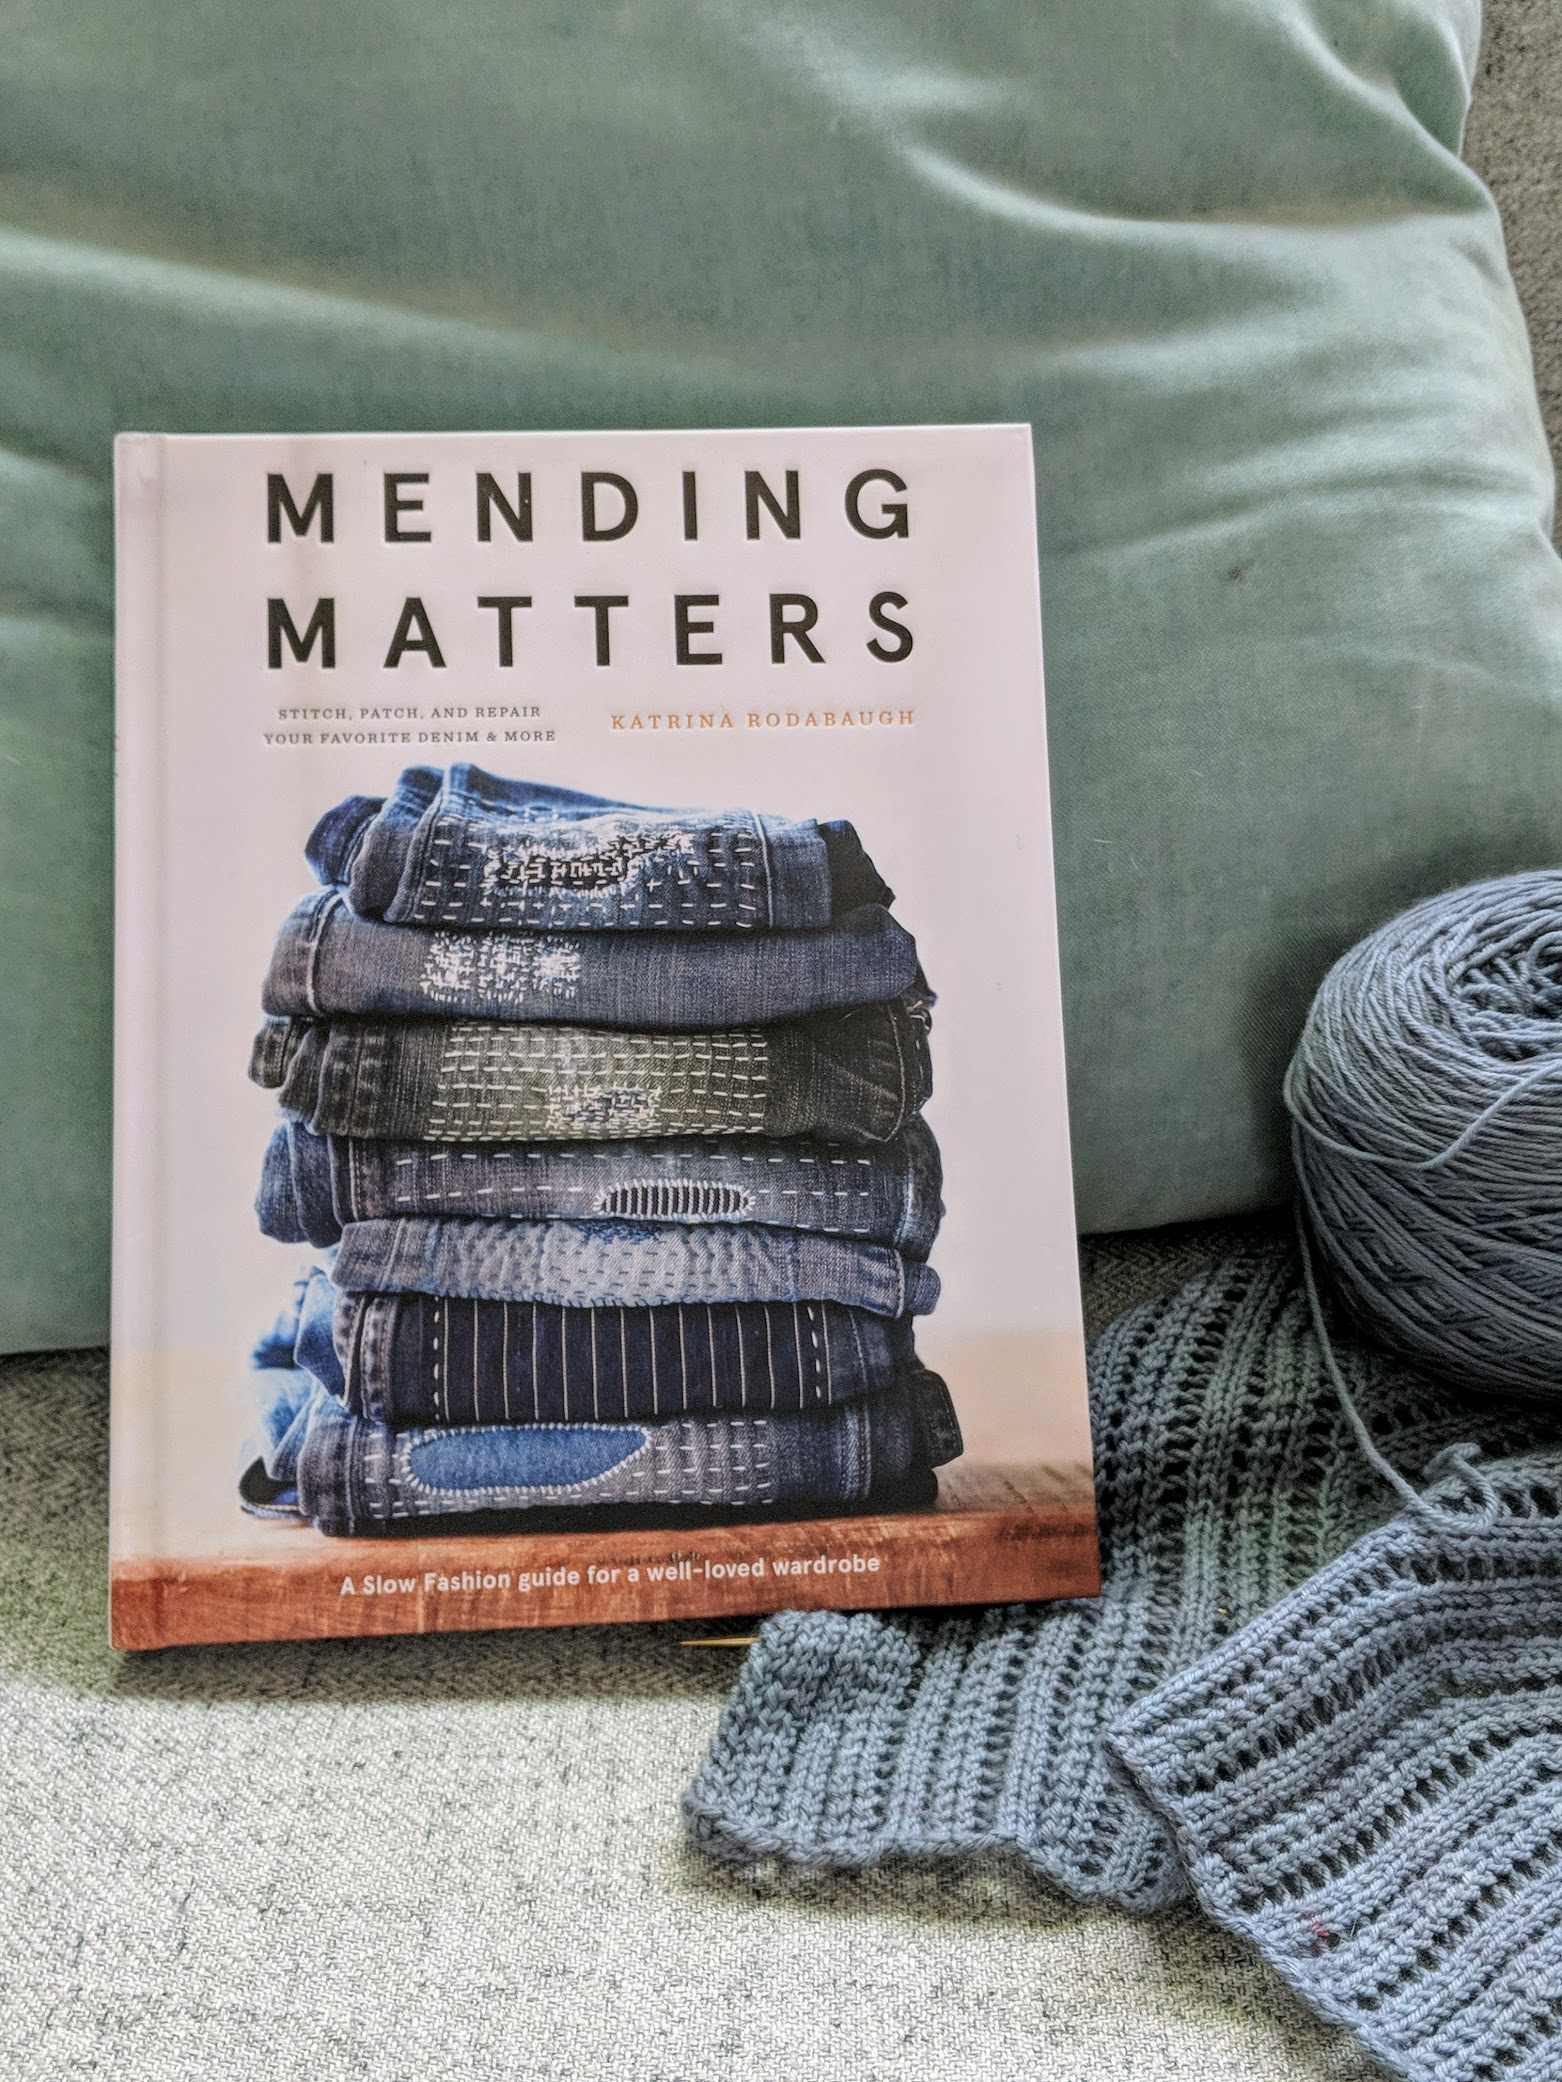 I pre-ordered  this book  by Katrina Rodabaugh   months ago and it arrived this week! Totally fantastic. I love it. I'm going to put a patch on a pair of jeans this weekend.